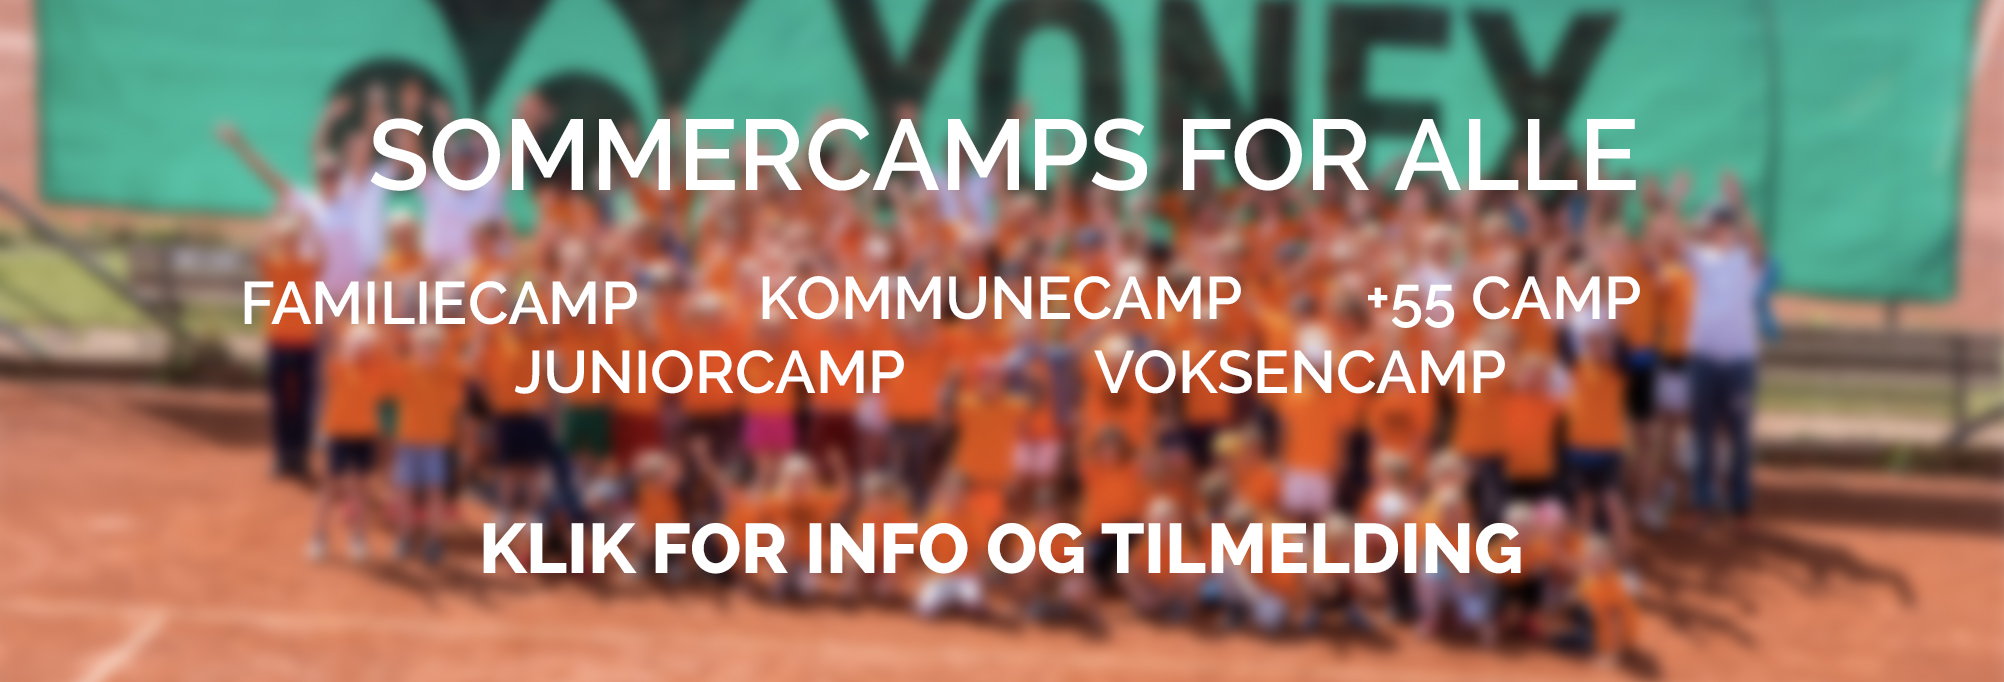 SOMMERCAMPS-BANNER